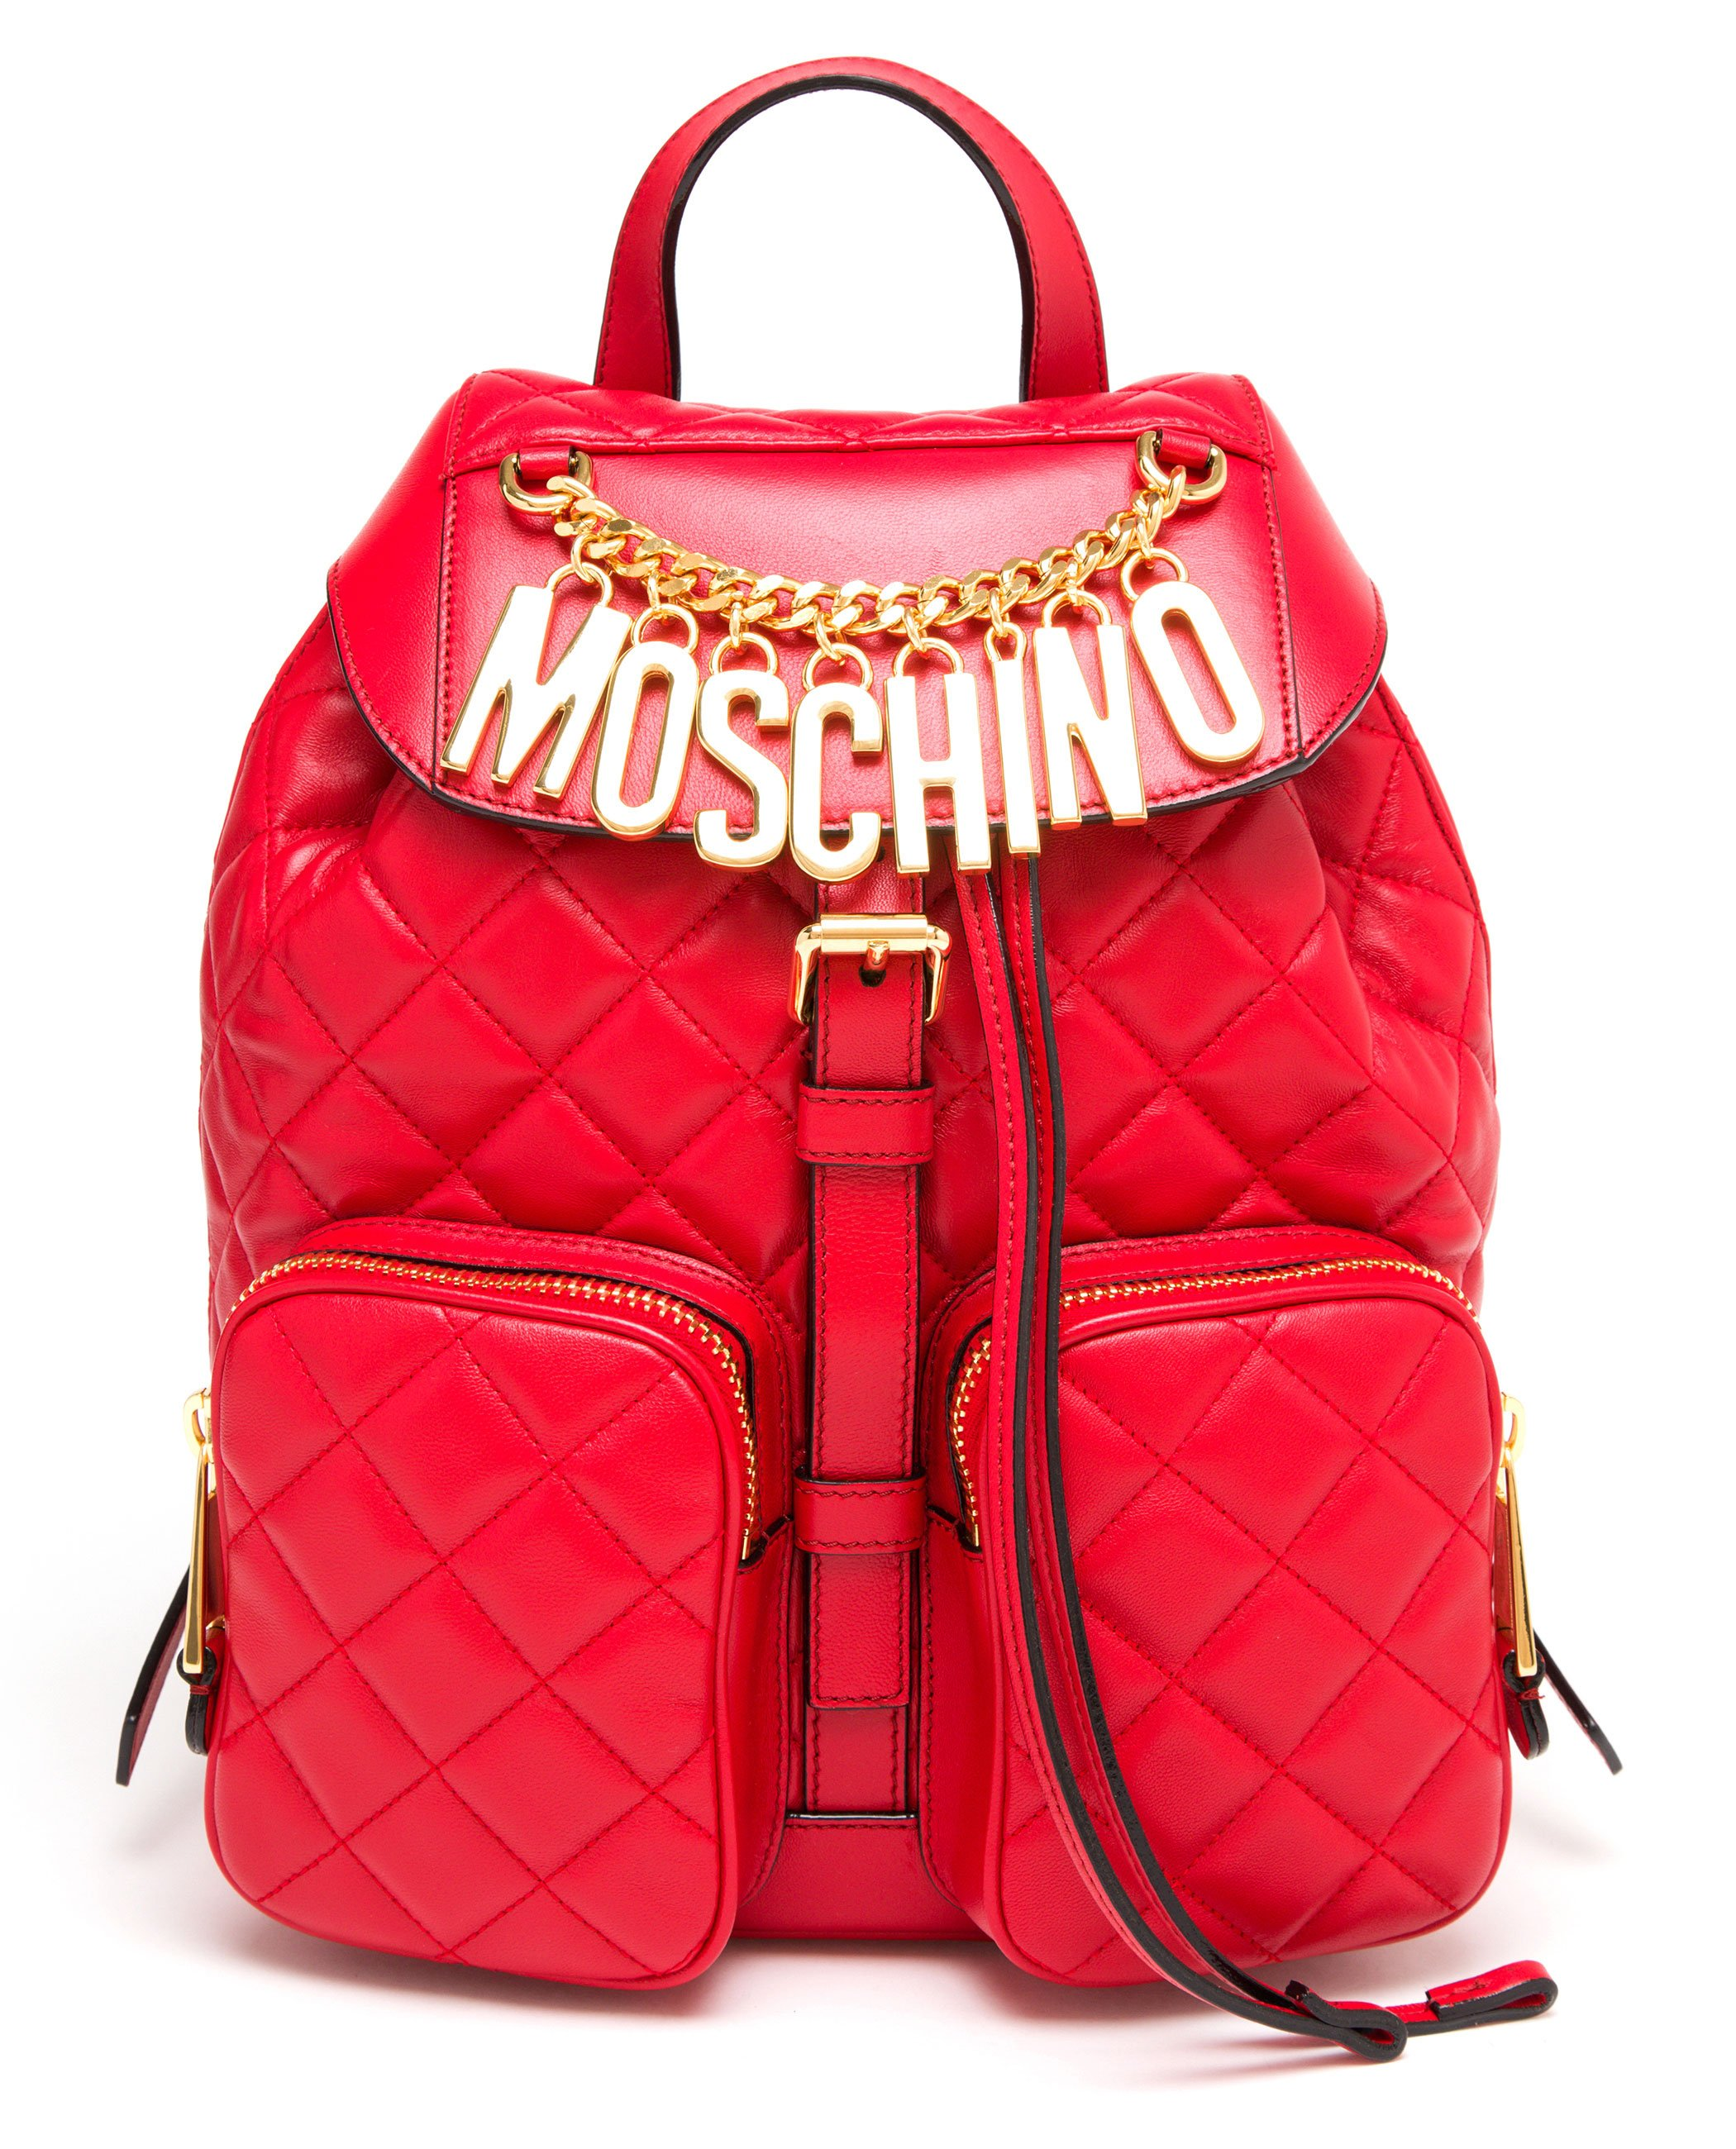 Moschino Red Leather Backpack in Red | Lyst